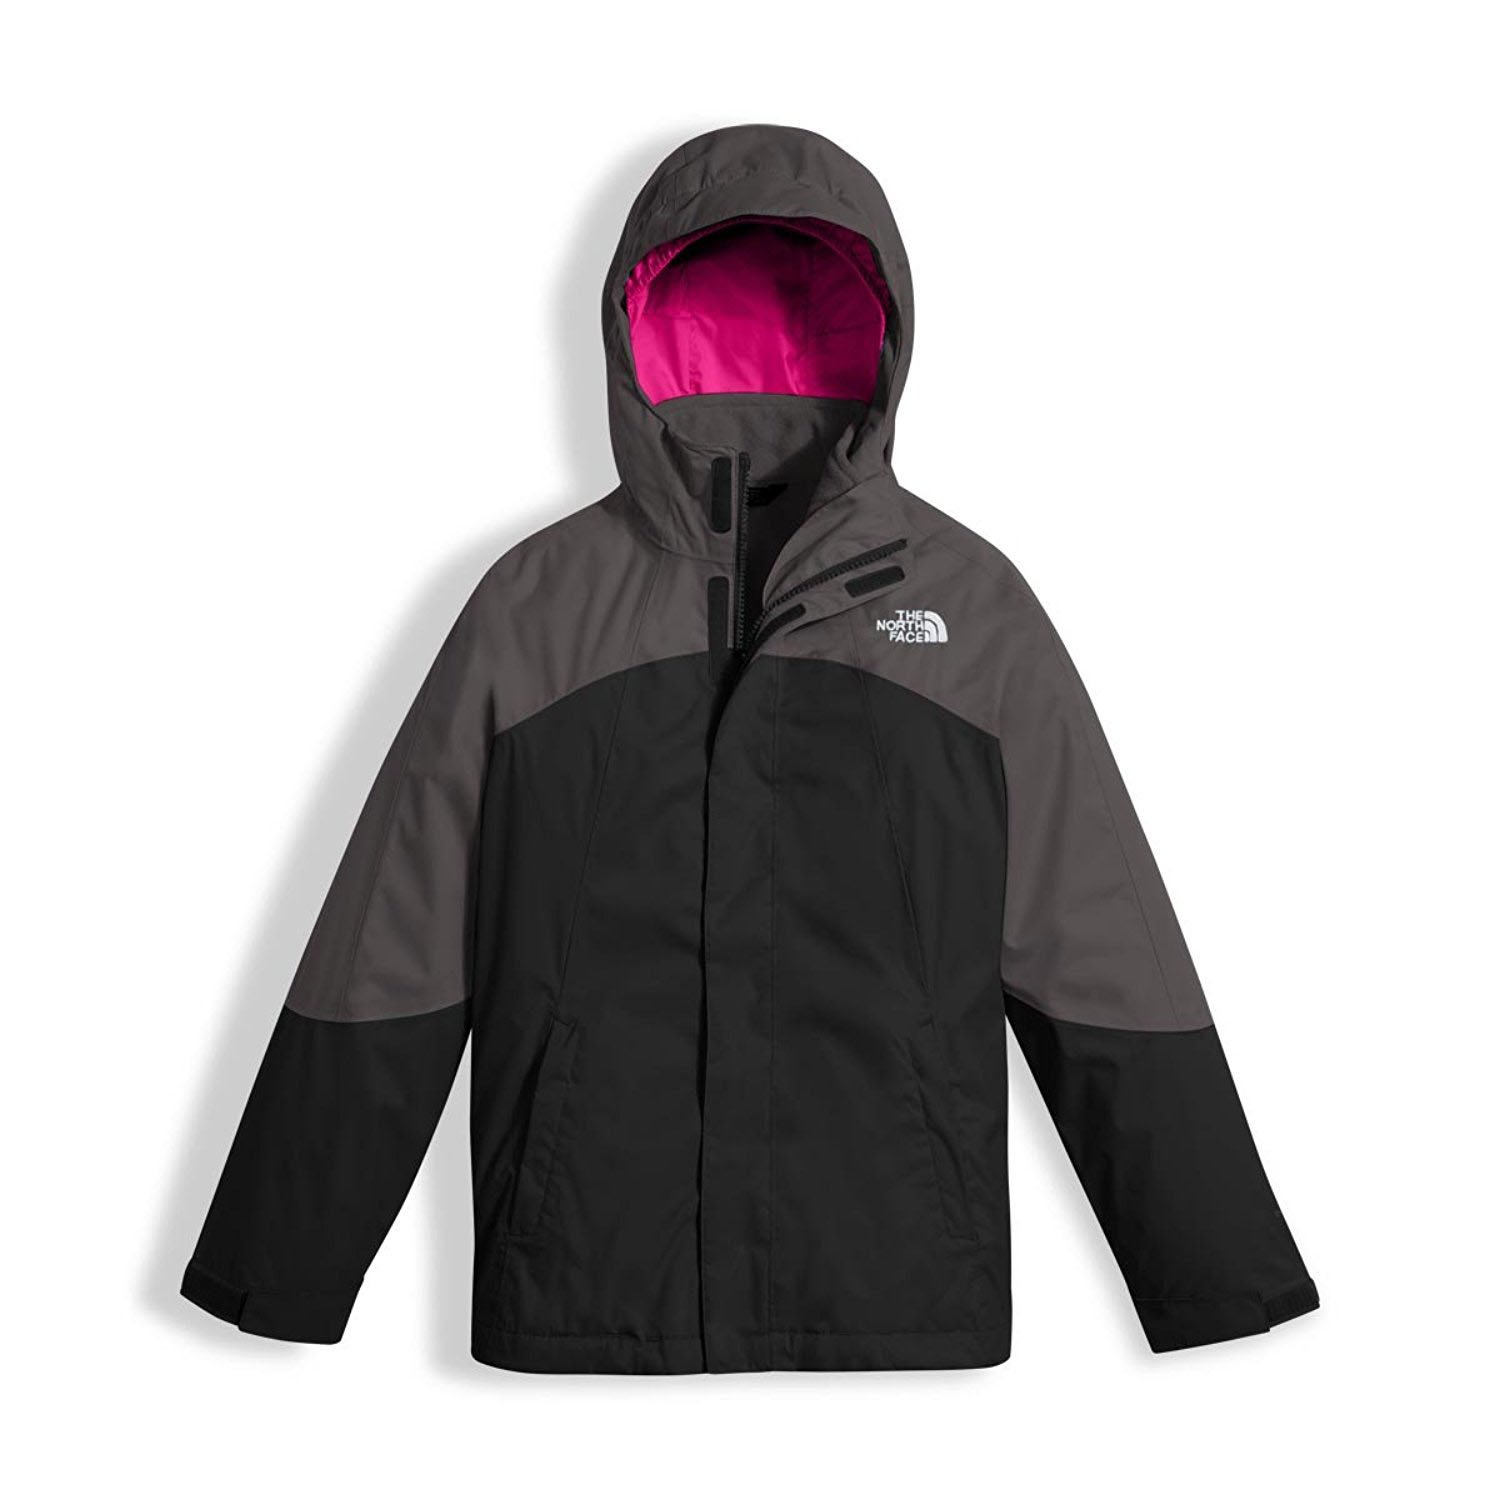 The North Face Girl's Mountain View Triclimate Jacket - Graphite Grey - S (Past Season)